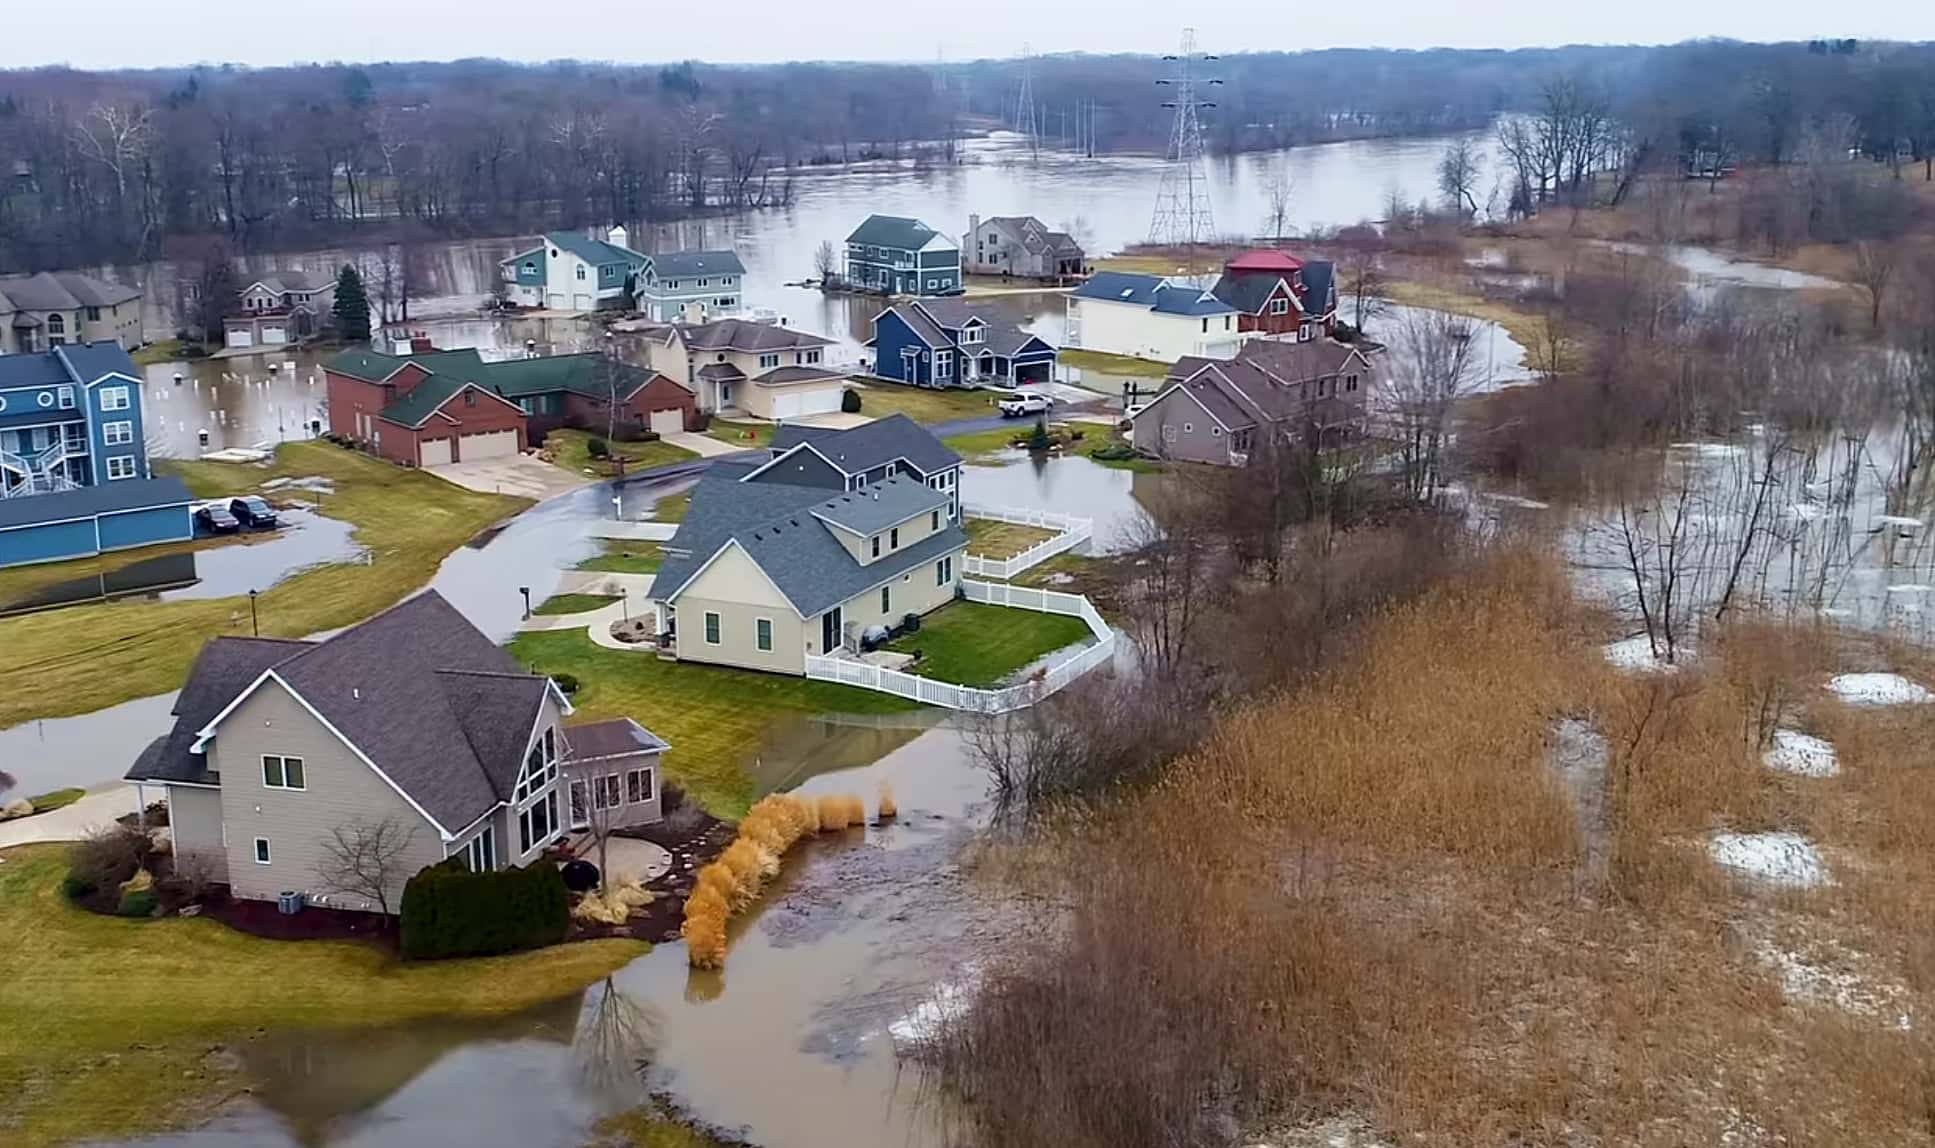 Drone Pilot Delivers Remarkable View of Flood Damage Around